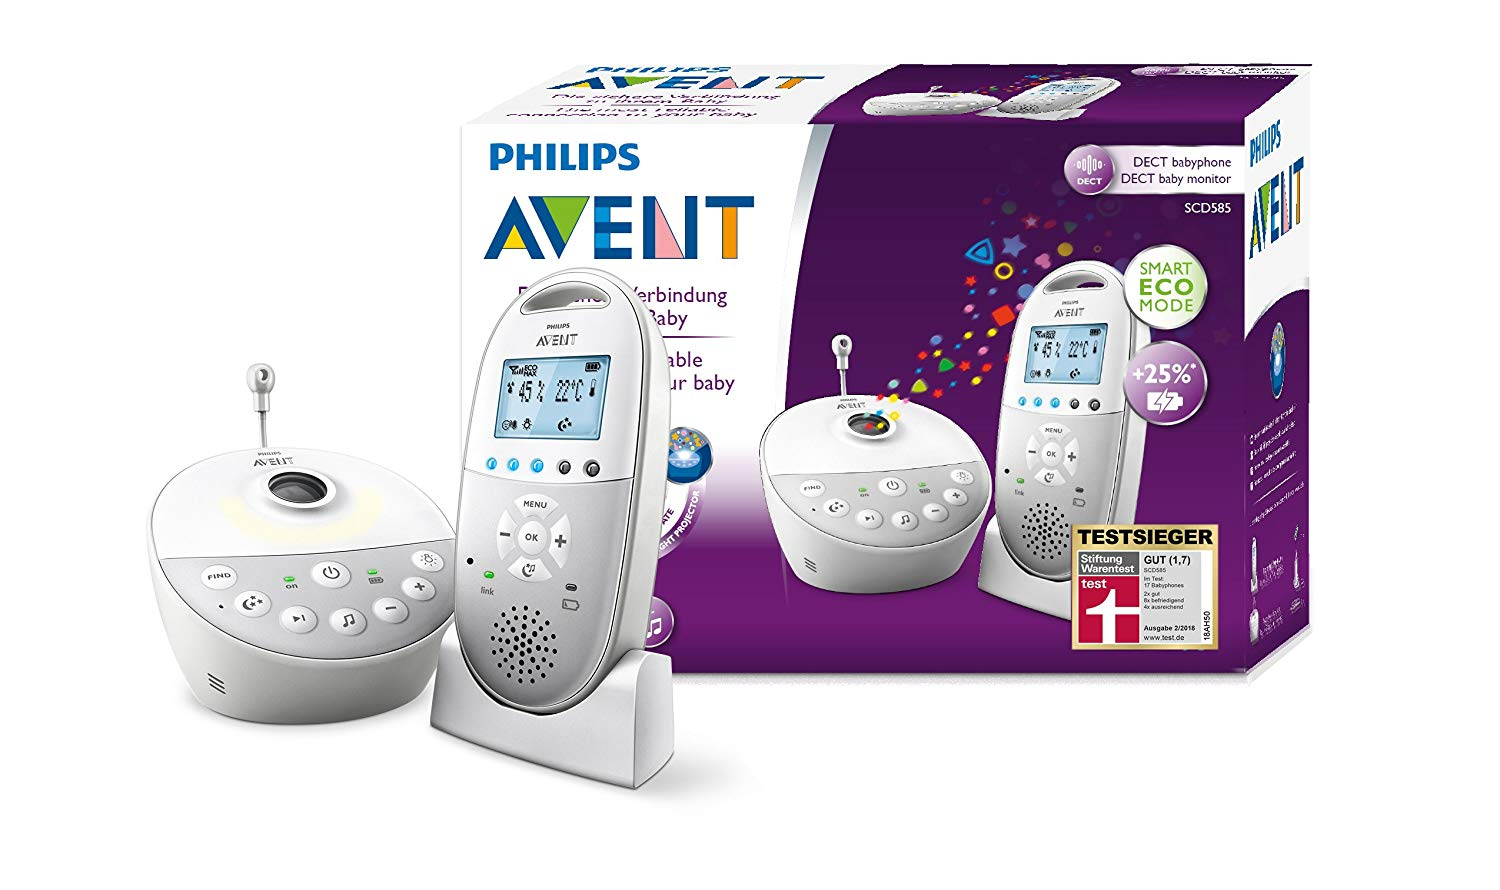 Philips Avent Babyphone amazon